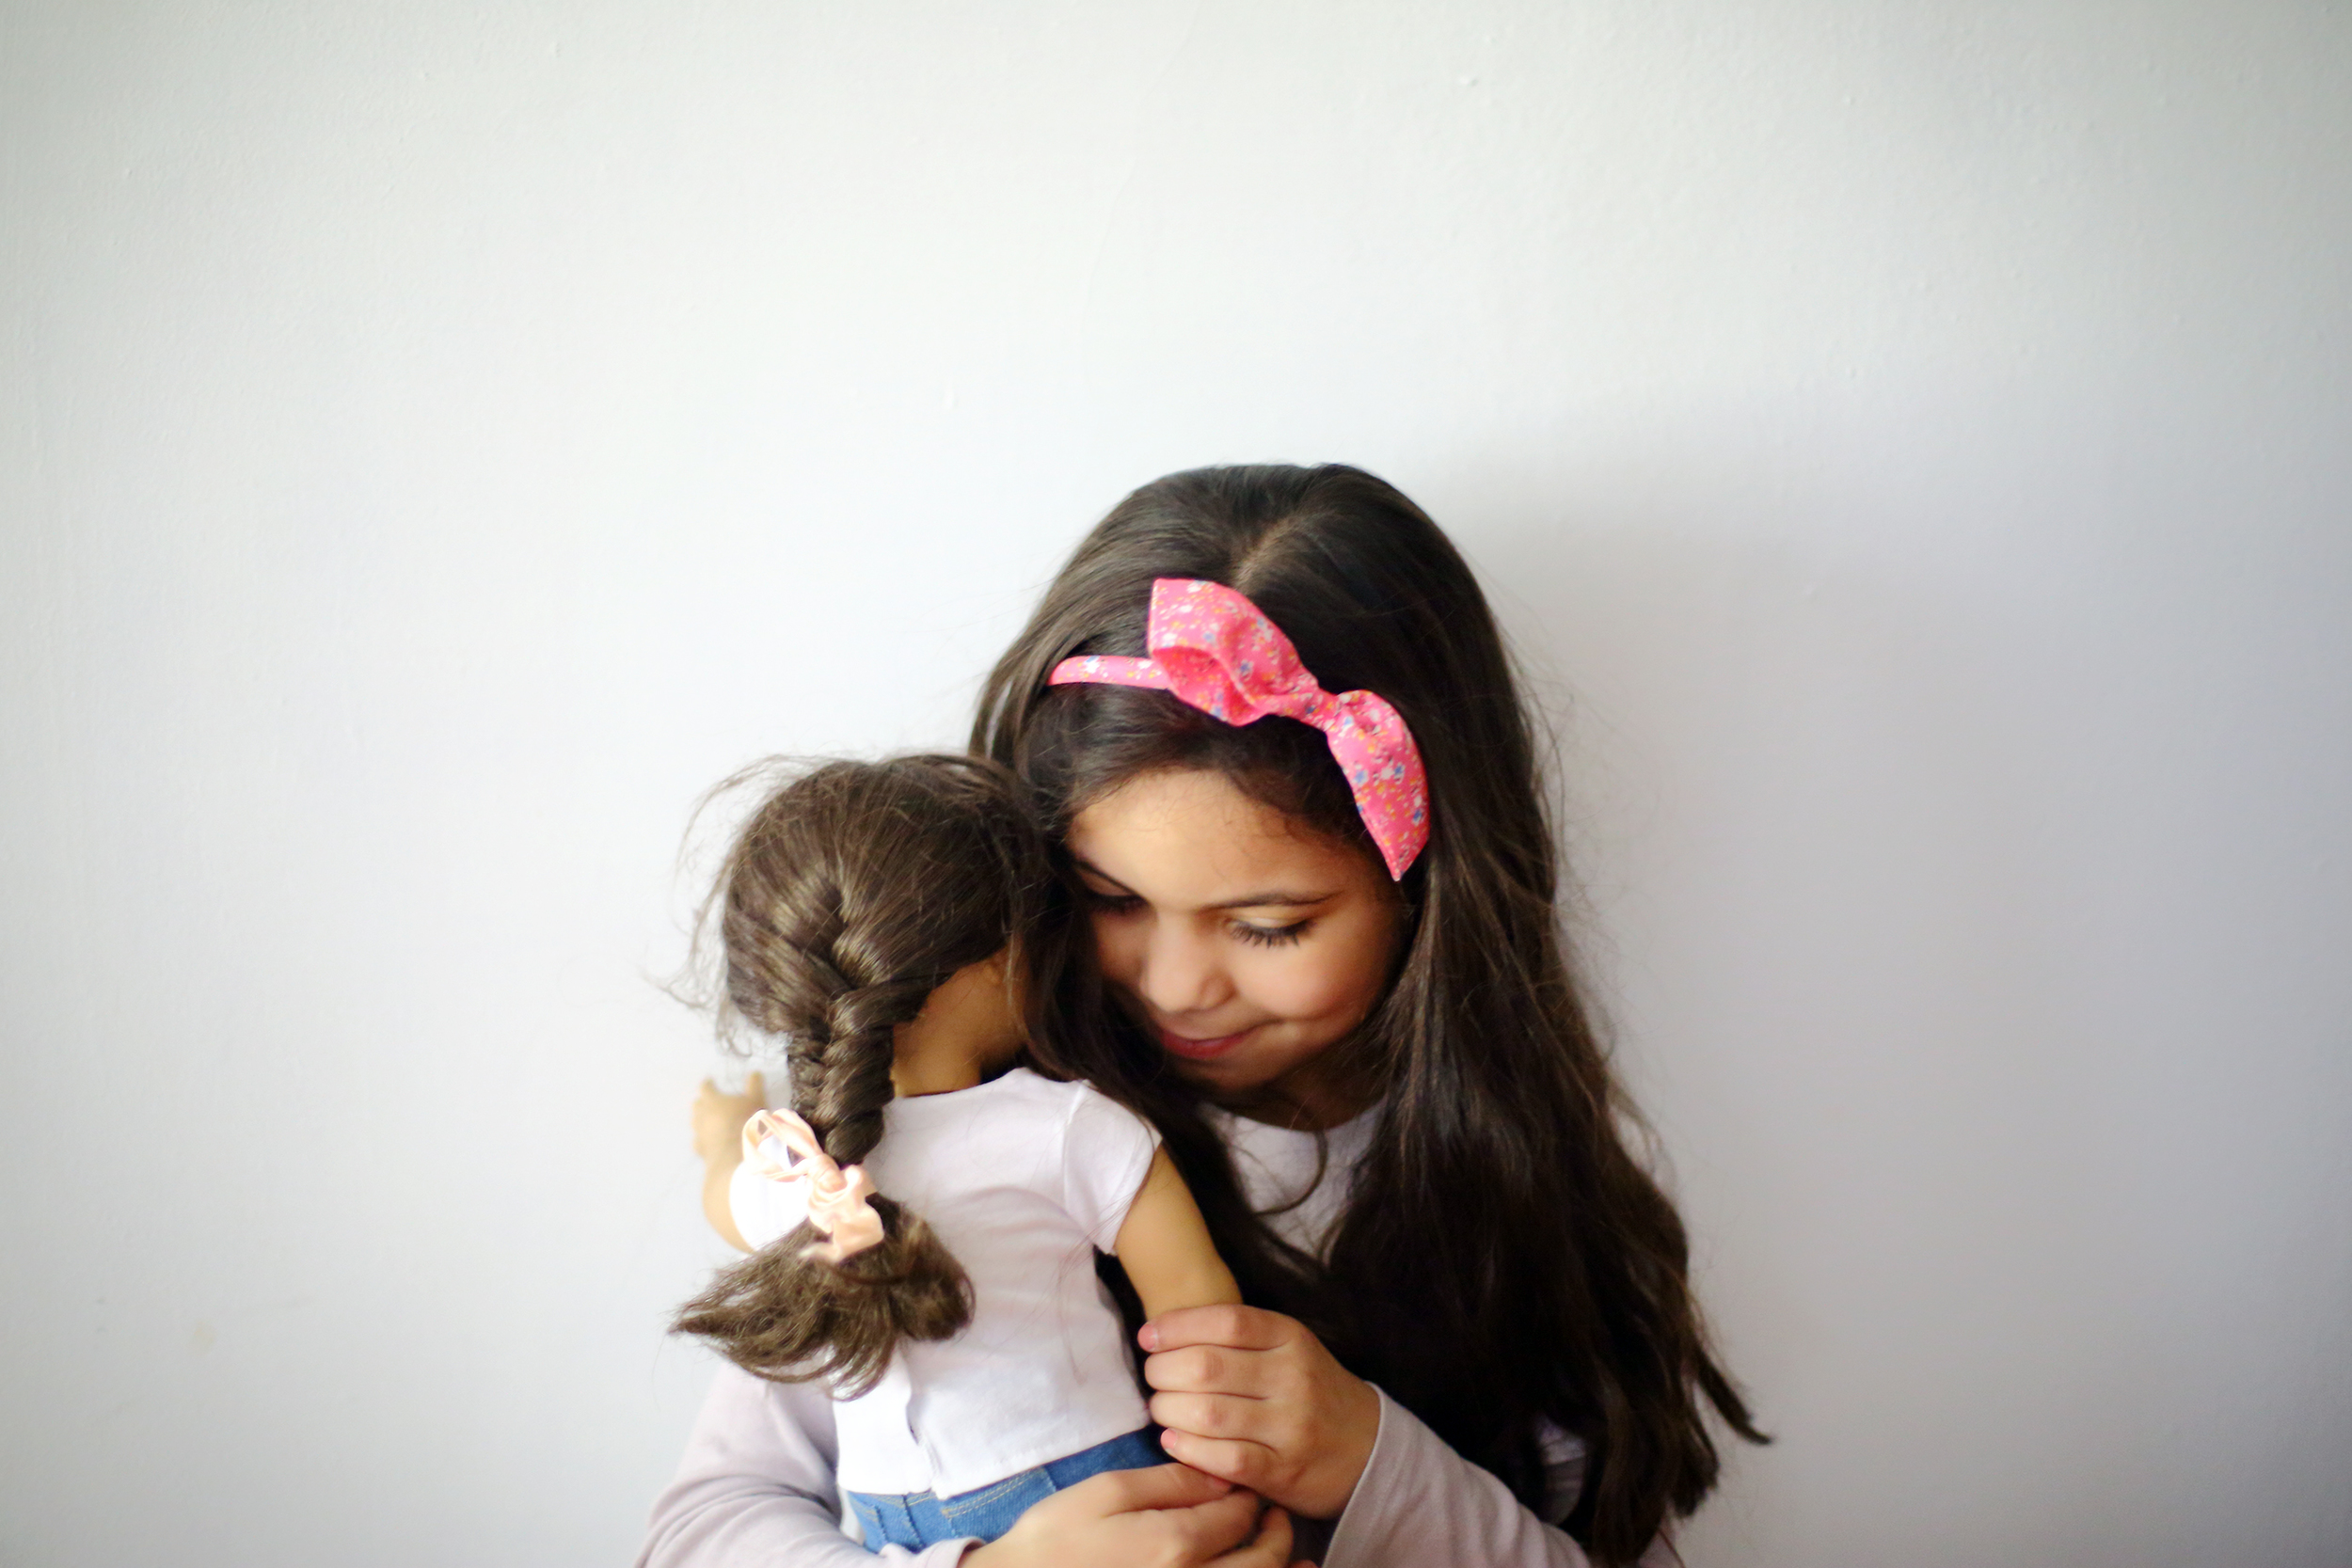 This weekend we went to the American Girl Doll Store in Chicago. Her doll Samantha became a better friend anda little bit more alive to her. It's magical to watch.